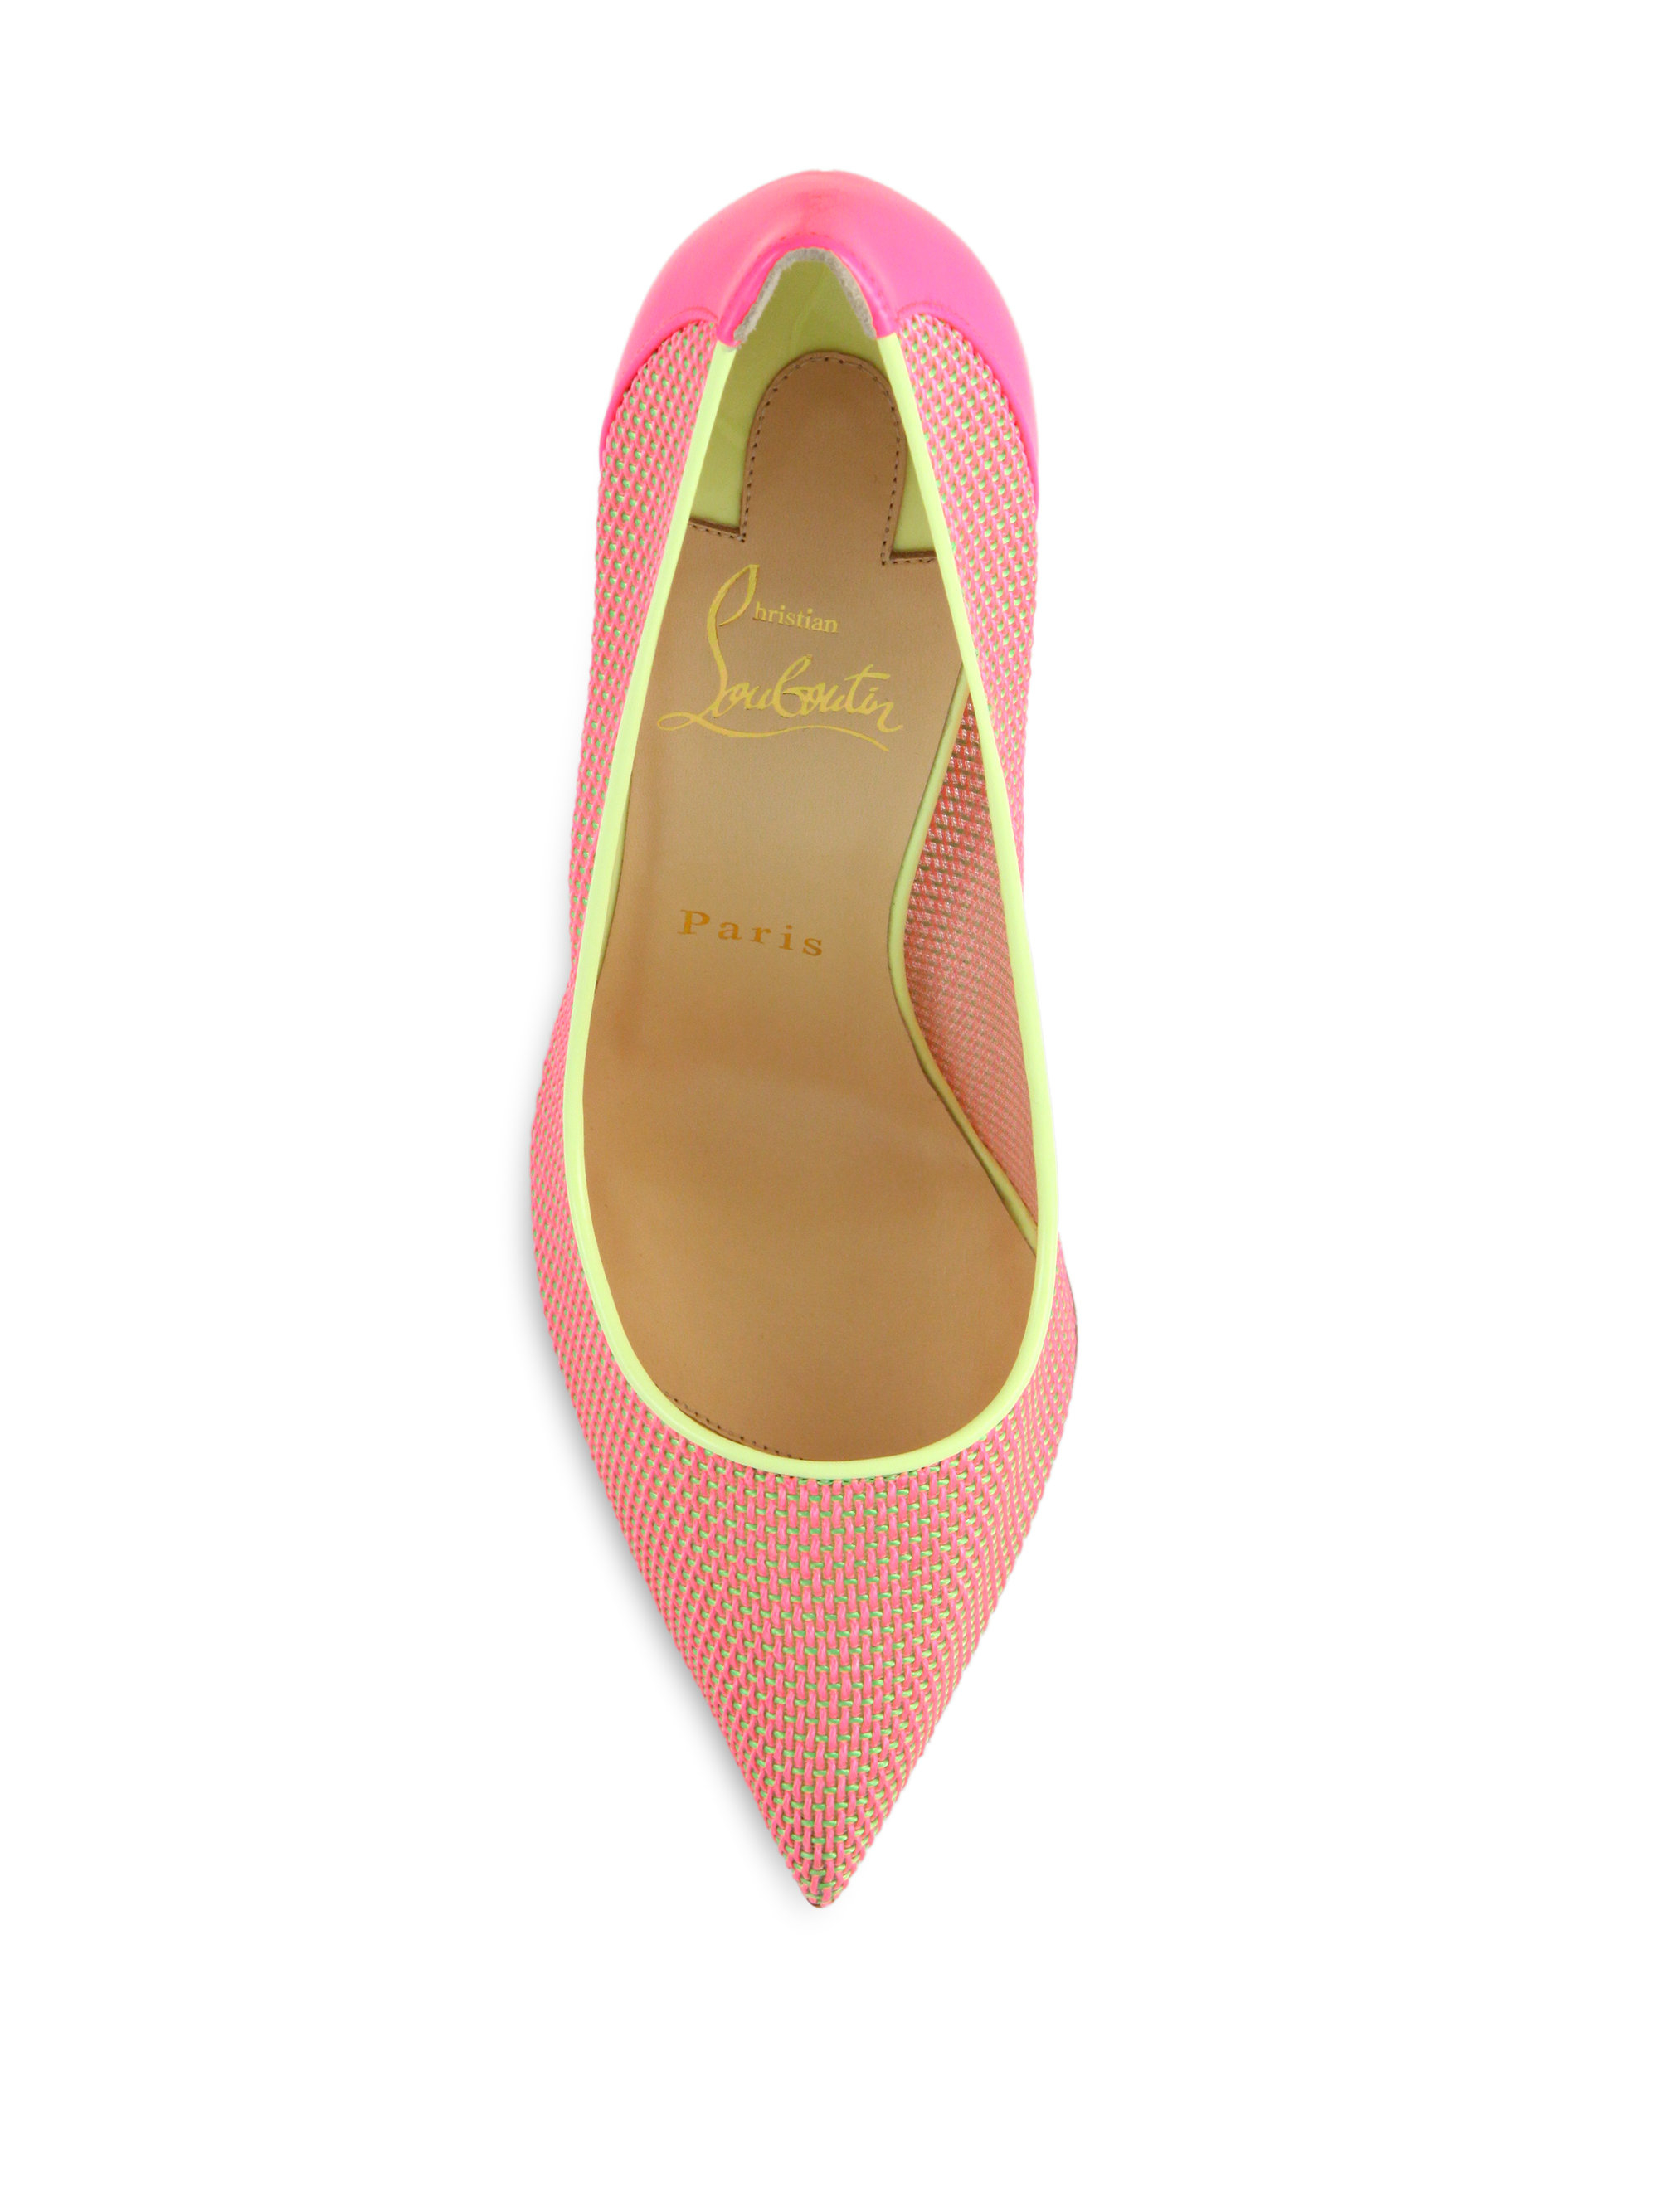 christian louboutin woven colorblocked pumps in pink lyst